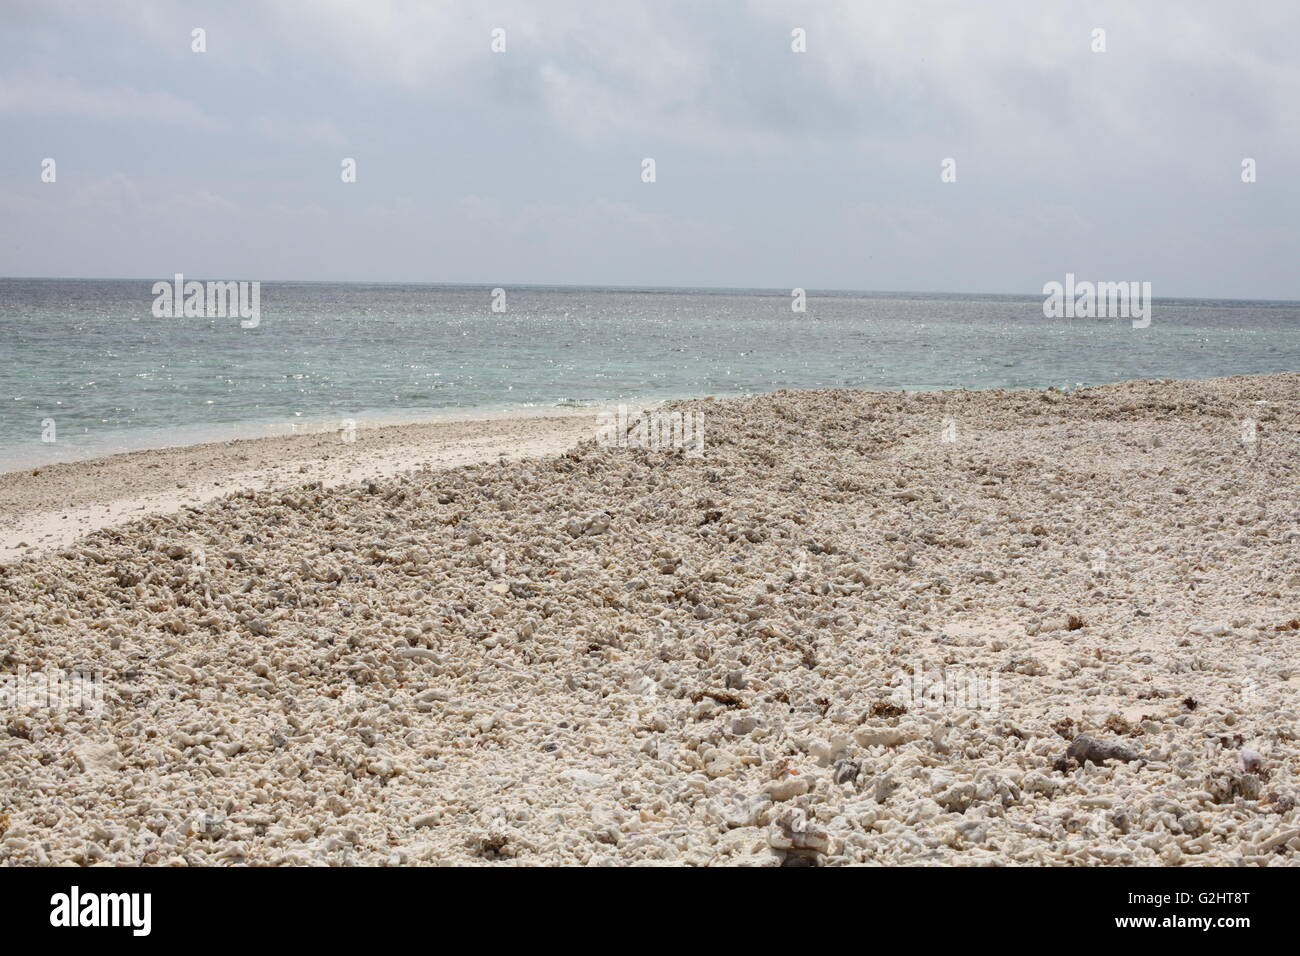 May 31, 2016 - Paracel Islands, Paracel Islands, CHN - Paracel Islands, China - May 31 2016: (EDITORIAL USE ONLY. - Stock Image